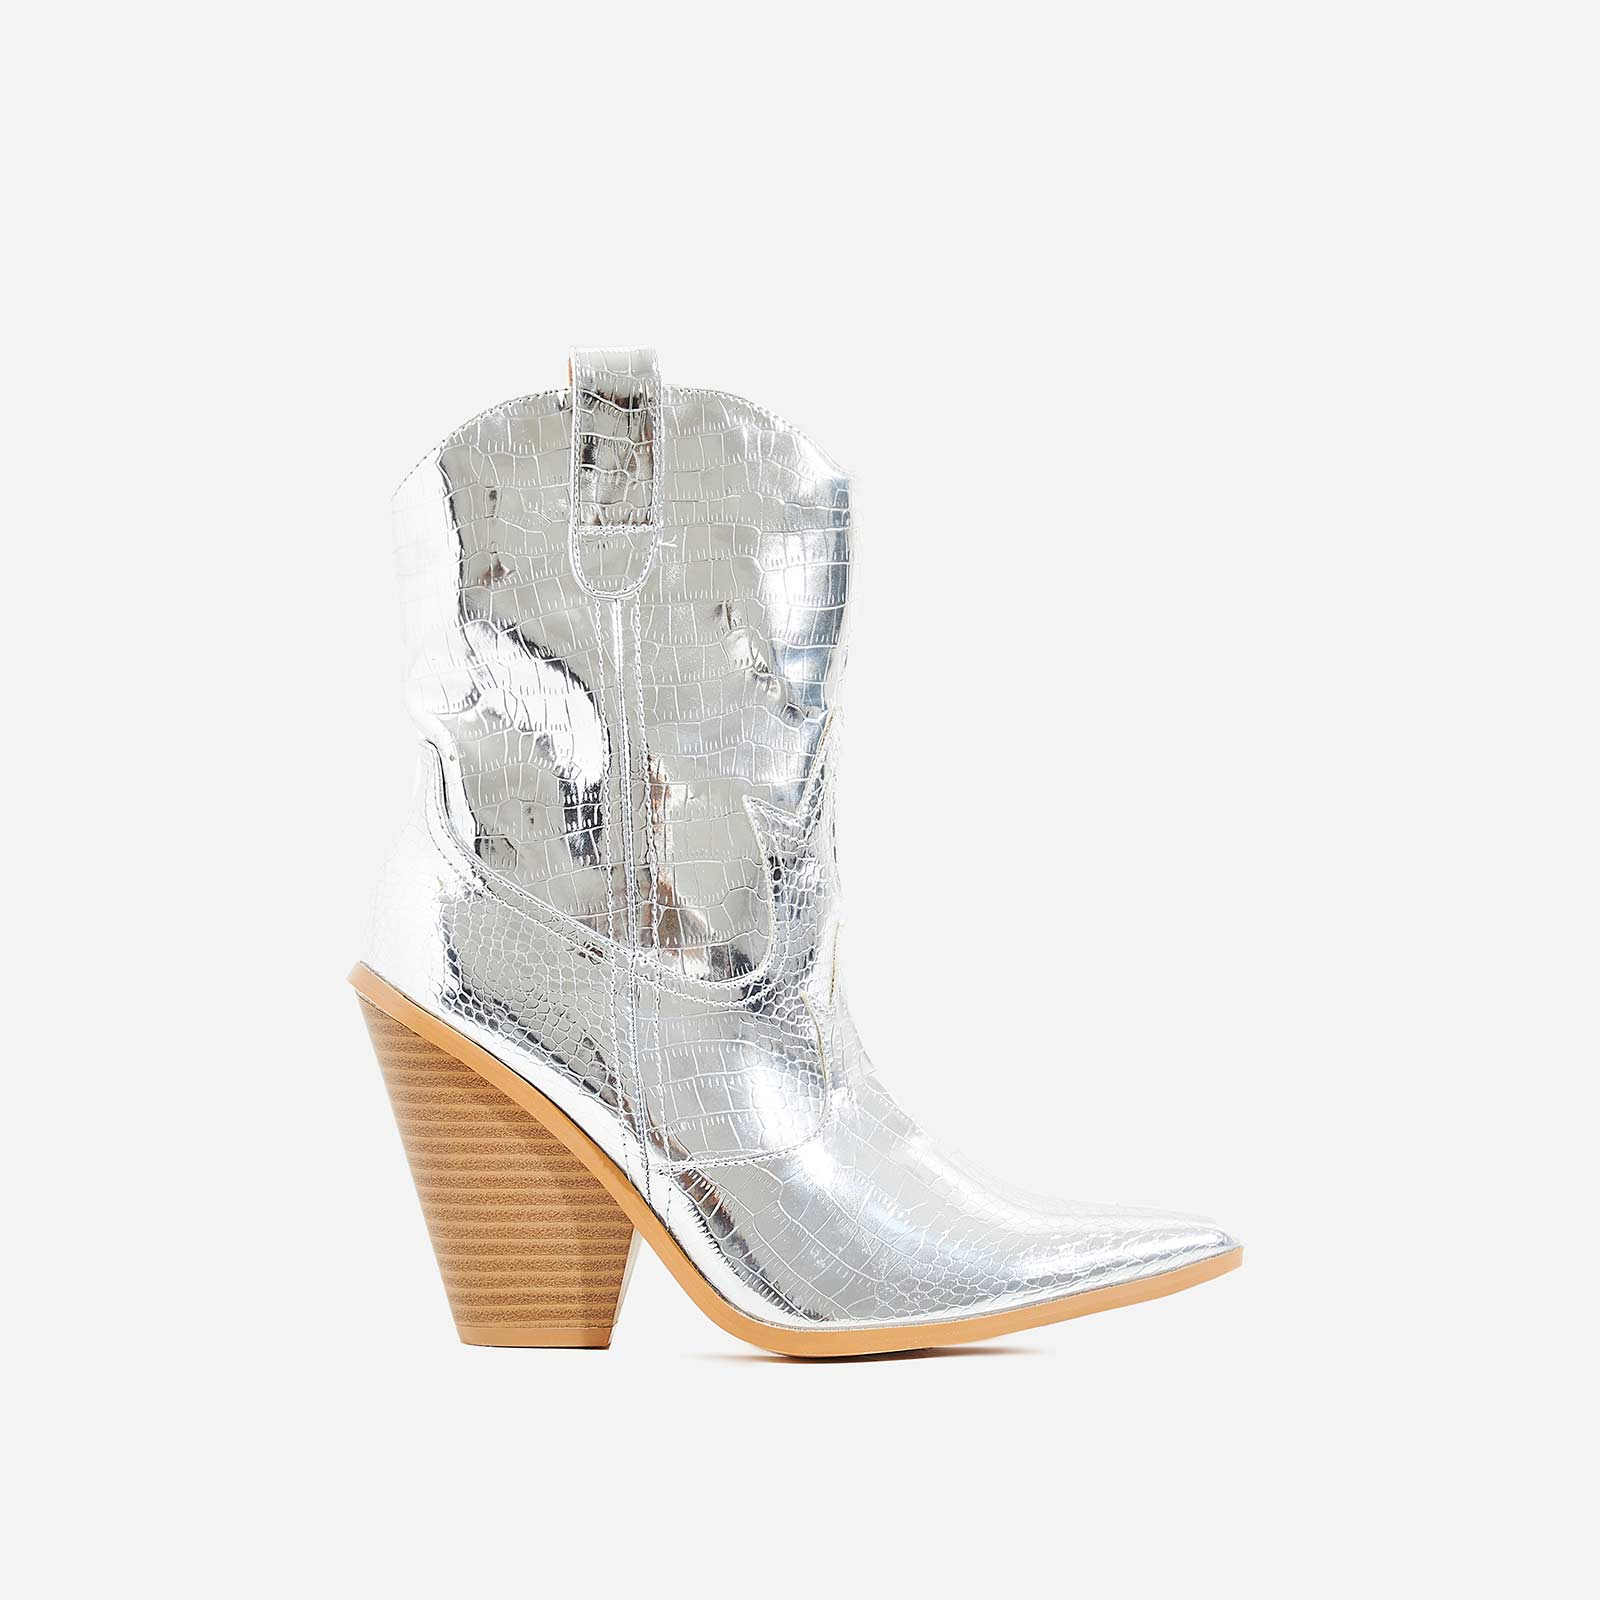 Kani Western Ankle Boot In Metallic Silver Croc Print Faux Leather